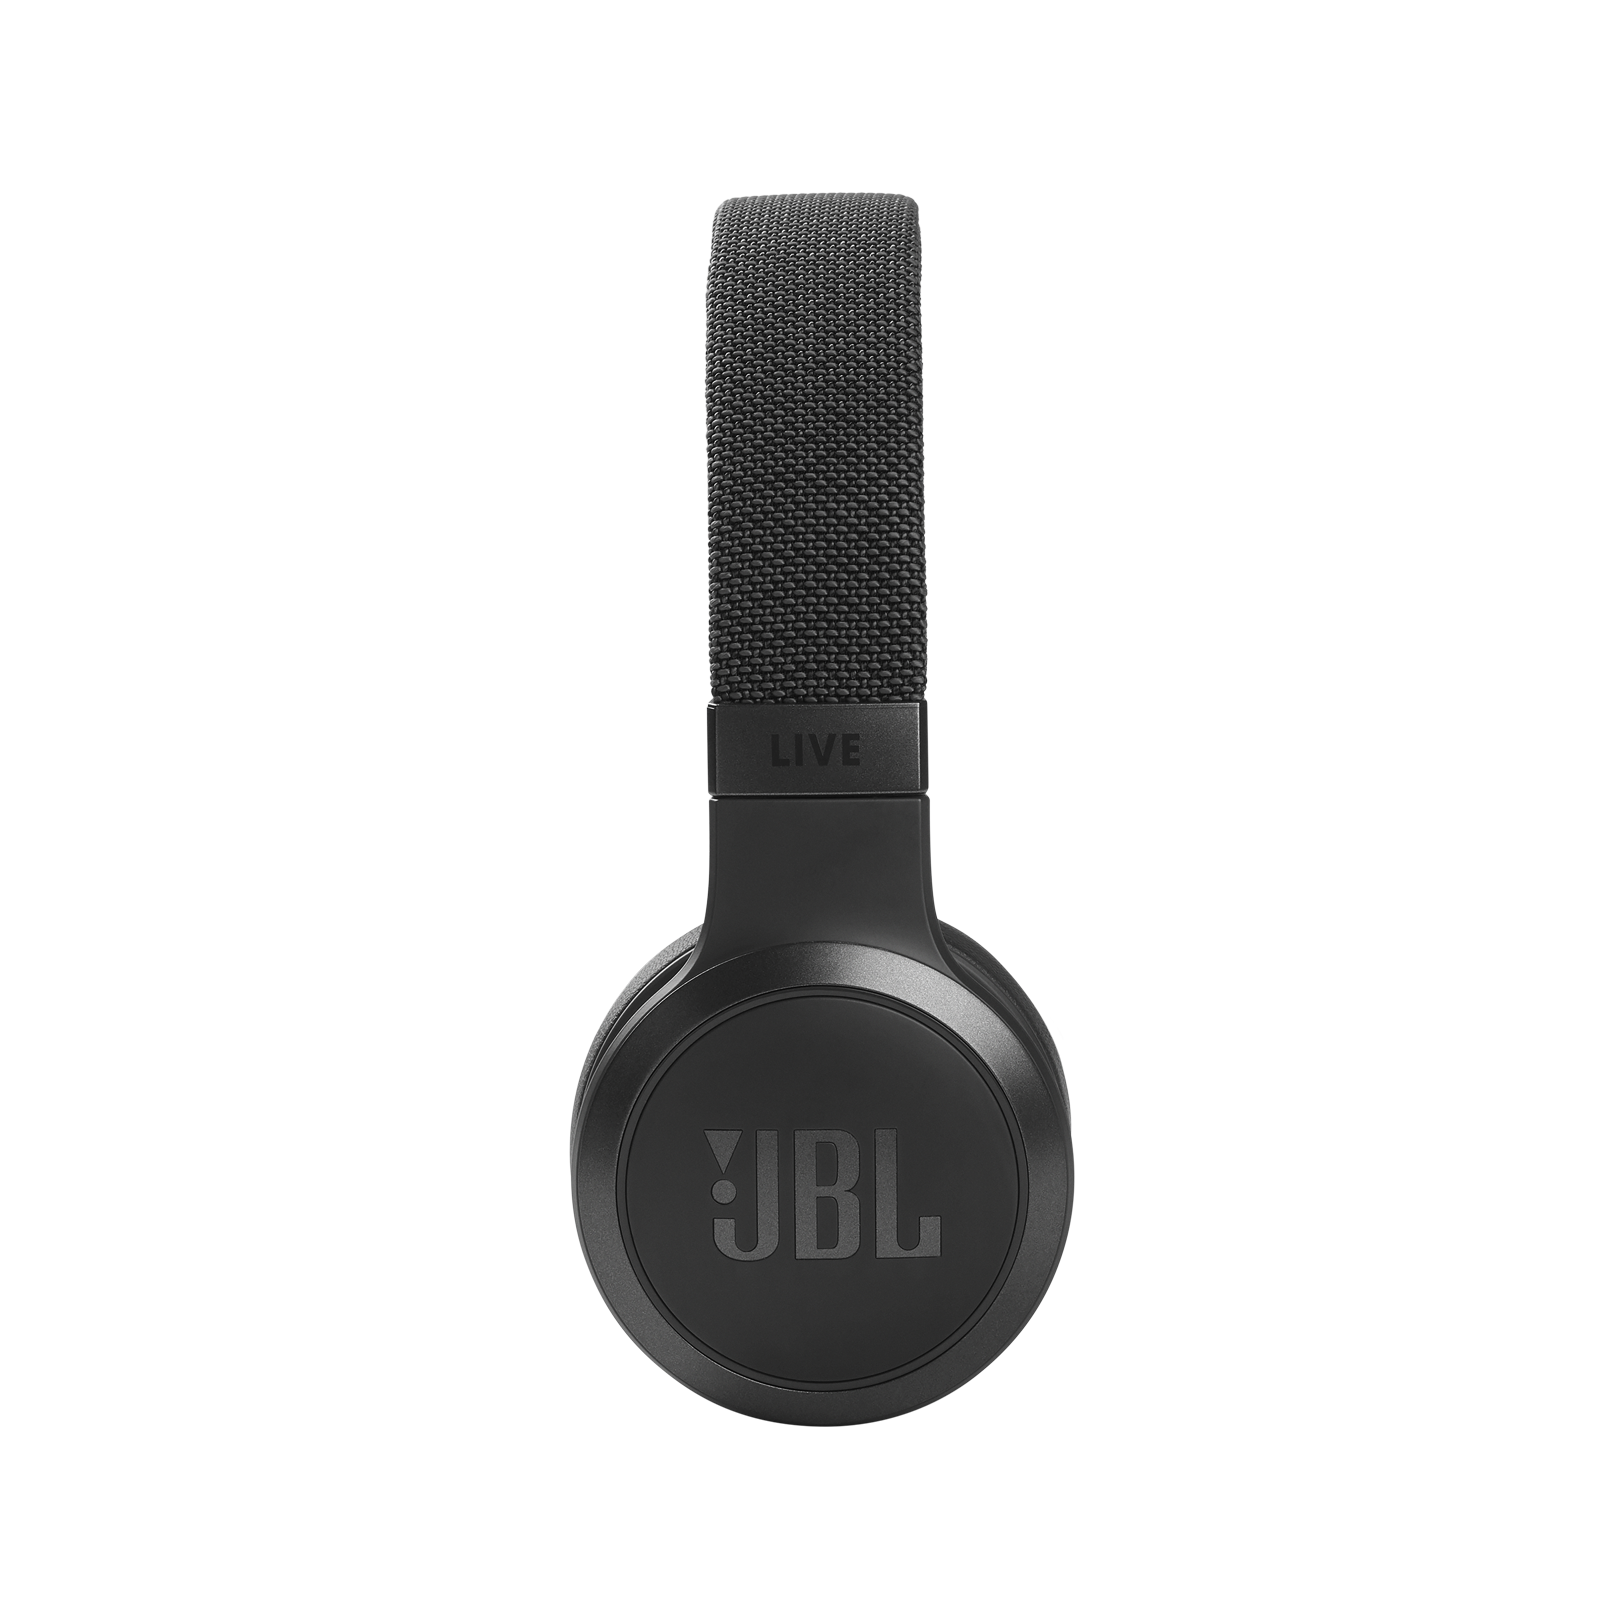 JBL Live 460NC - Black - WIRELESS ON-EAR NC HEADPHONES - Detailshot 1